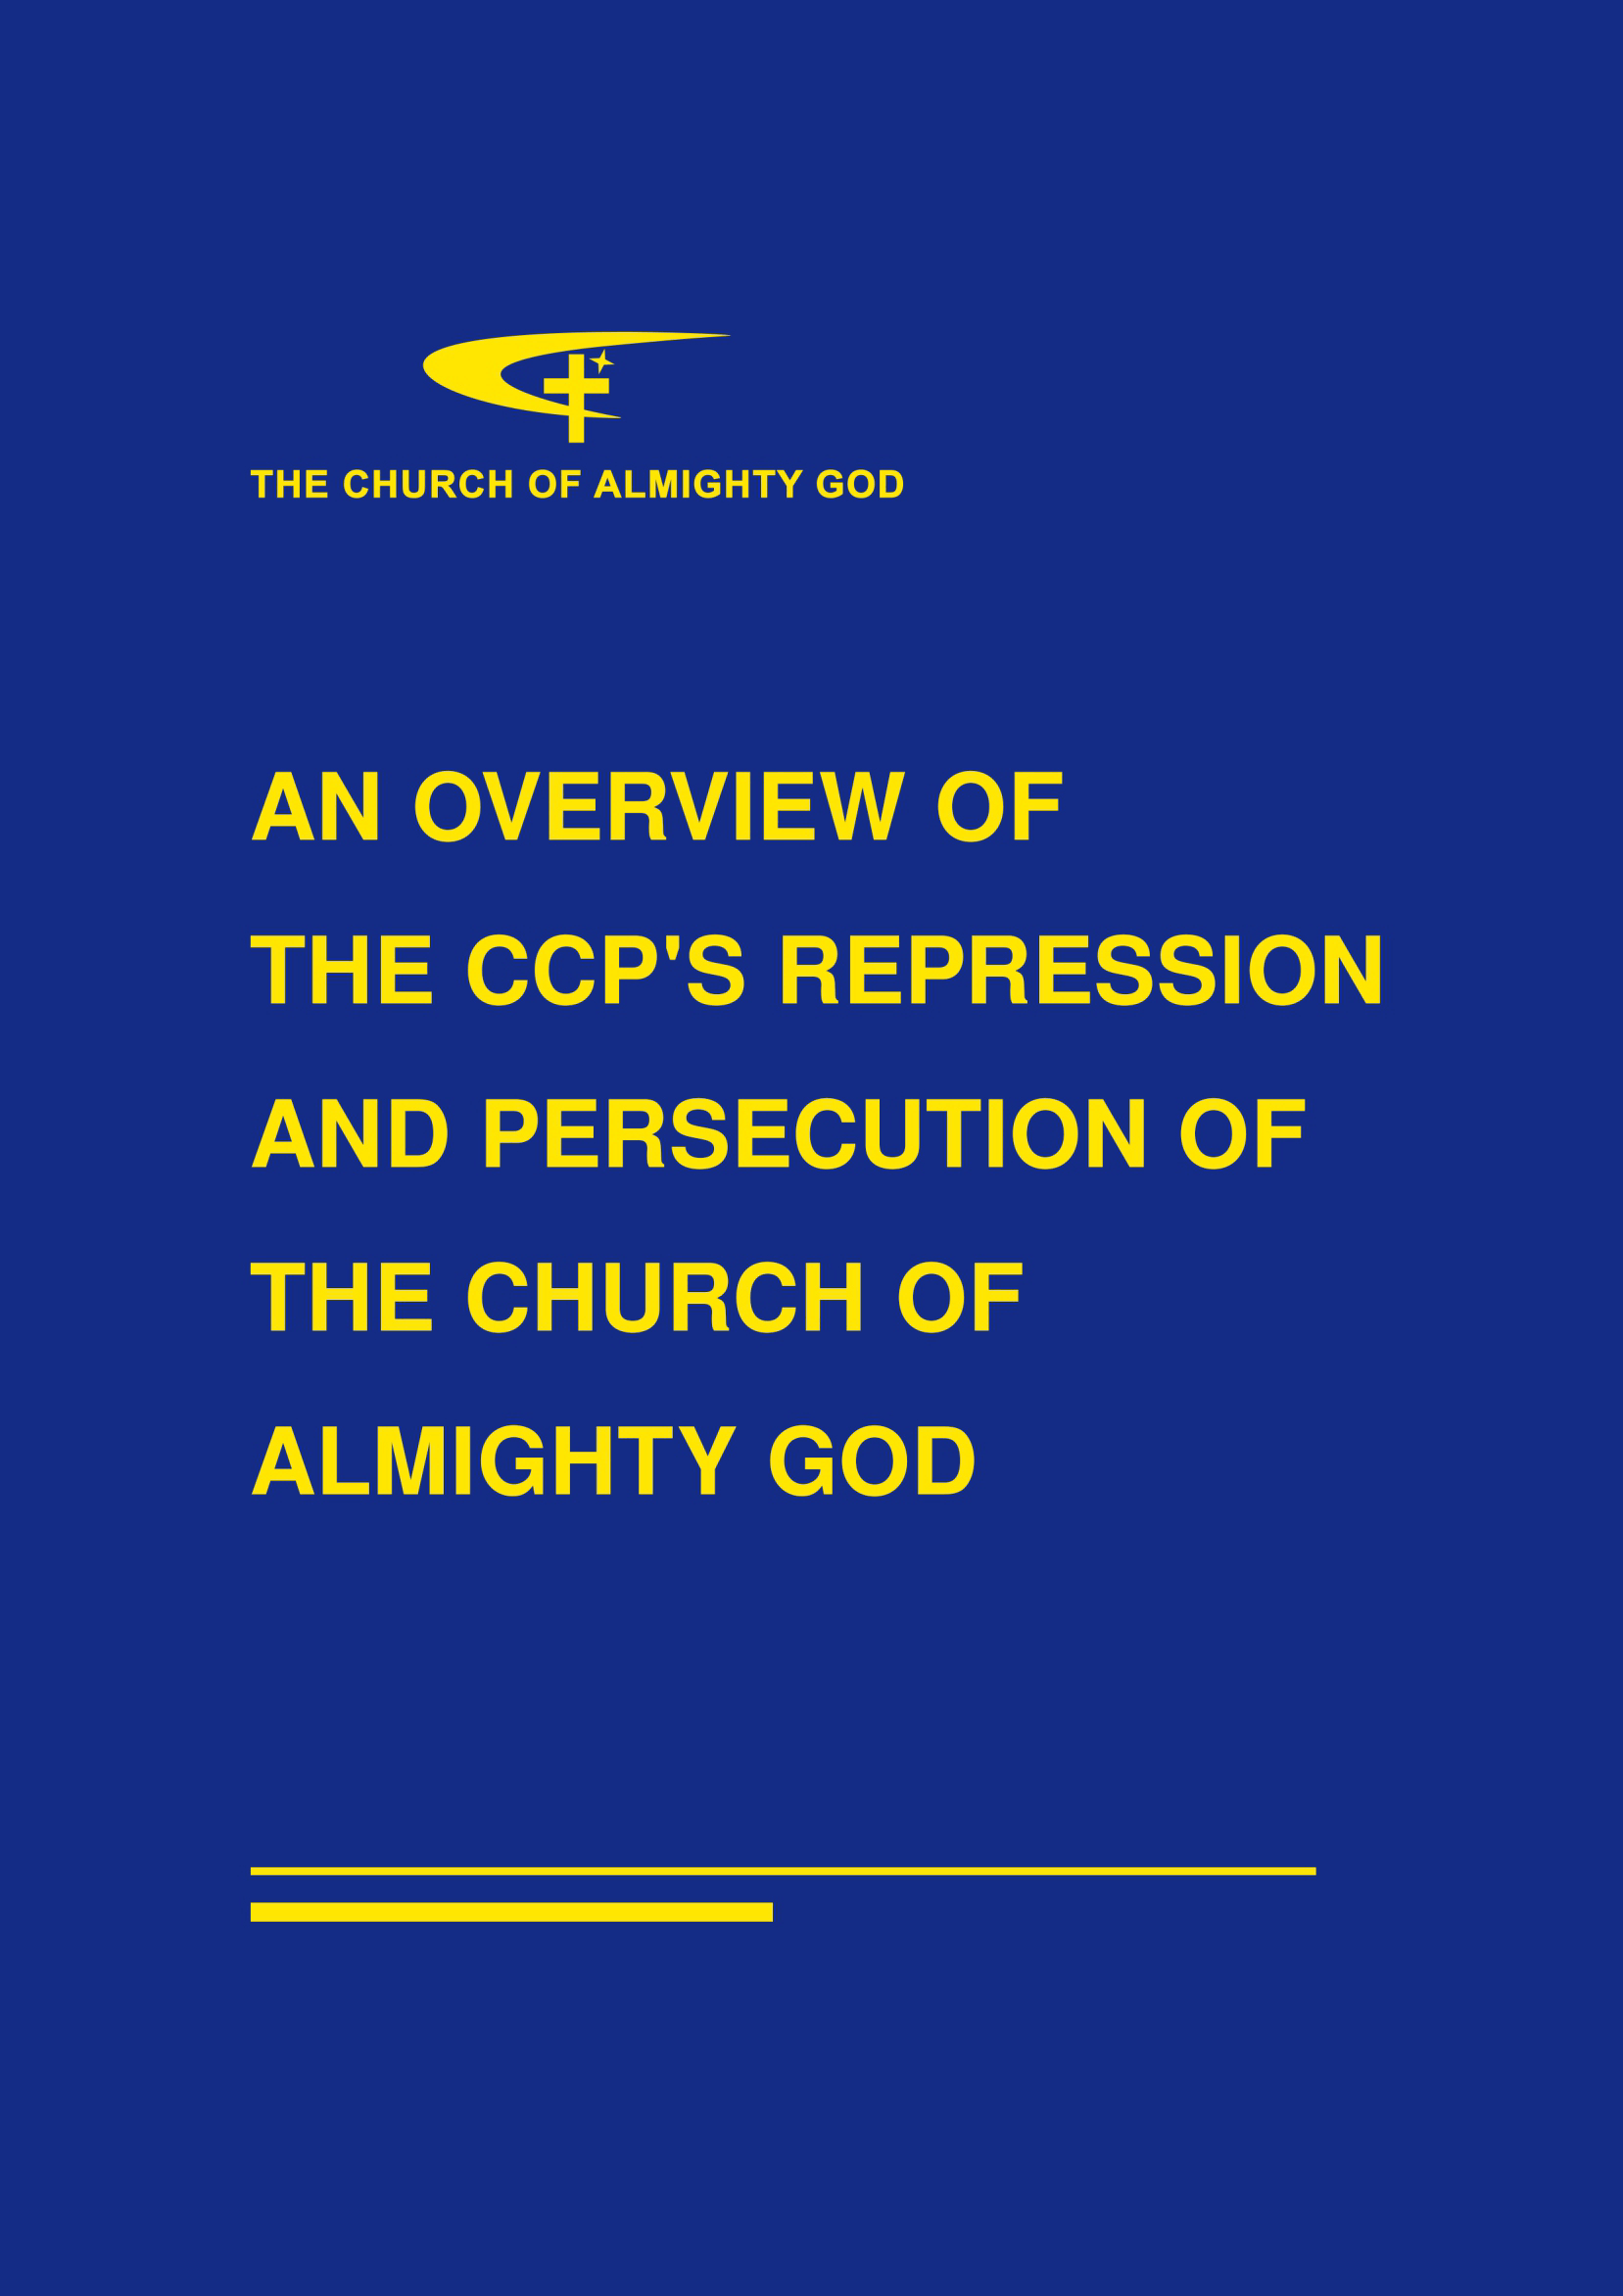 An Overview of The CCP's Repression and Persecution of The Church of Almighty God